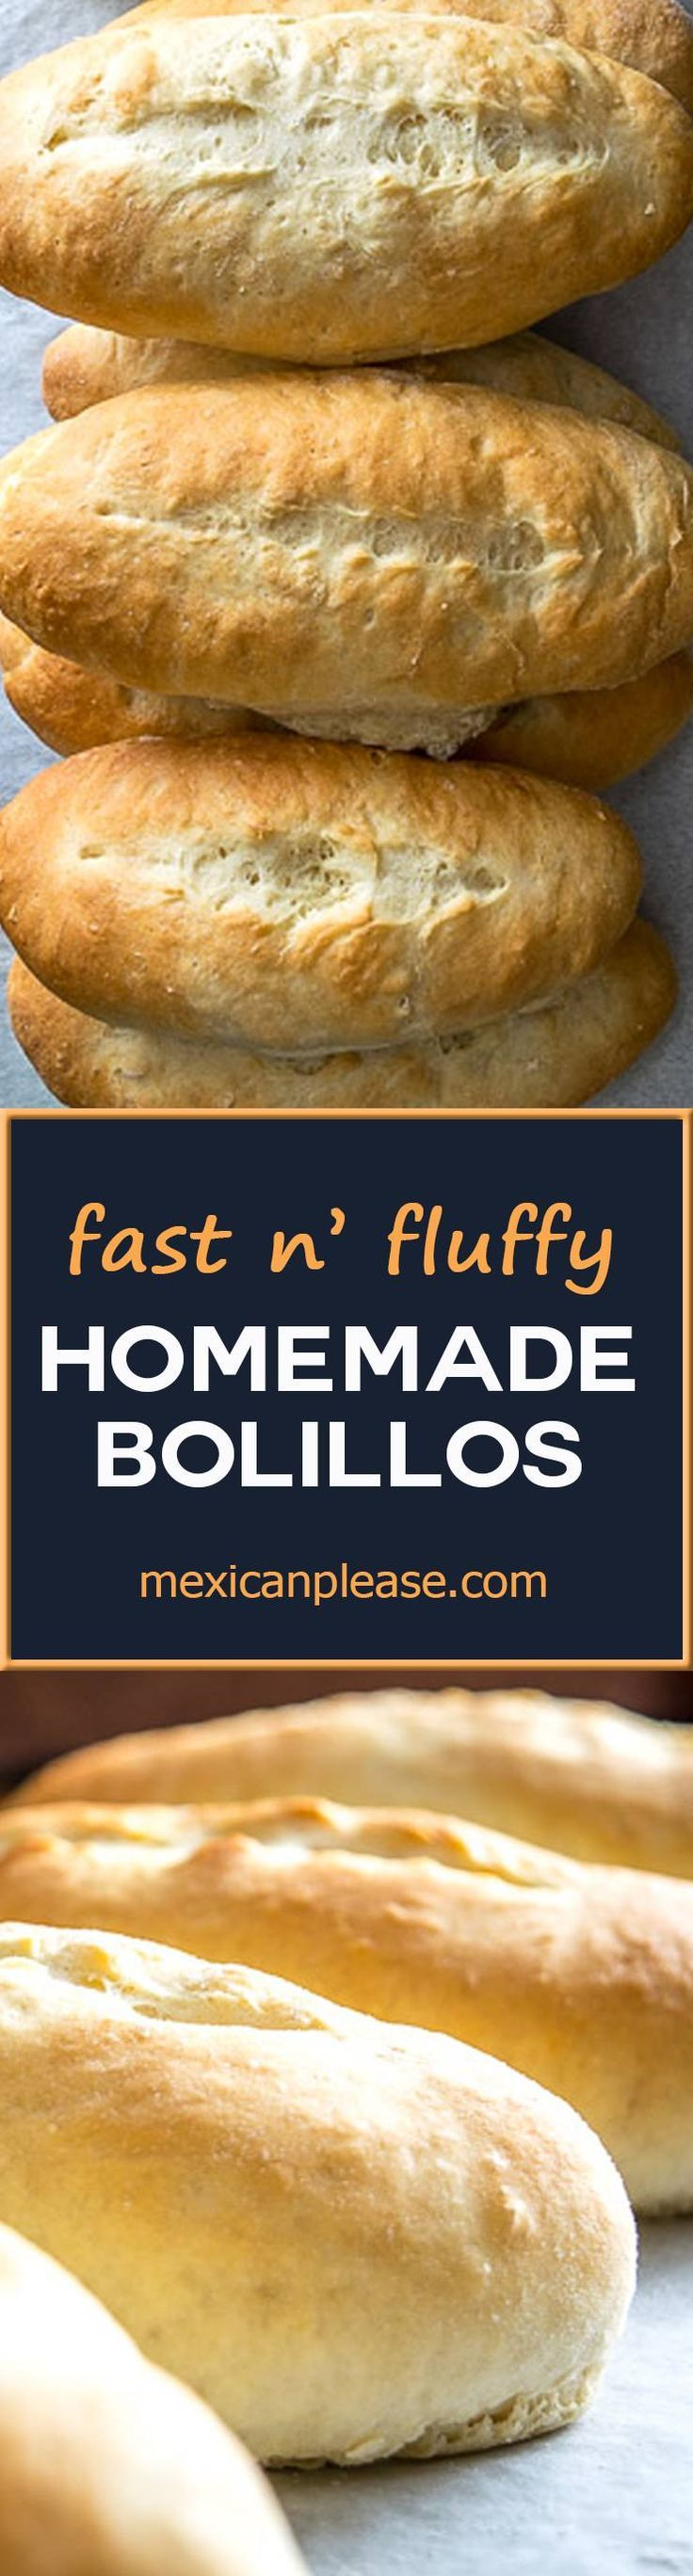 Don't have time to sit around and watch dough rise? This easy bolillos recipe uses extra yeast for a quick batch of light, fluffy rolls that are perfect for sandwiches.  Round trip is less than an hour!  http://mexicanplease.com